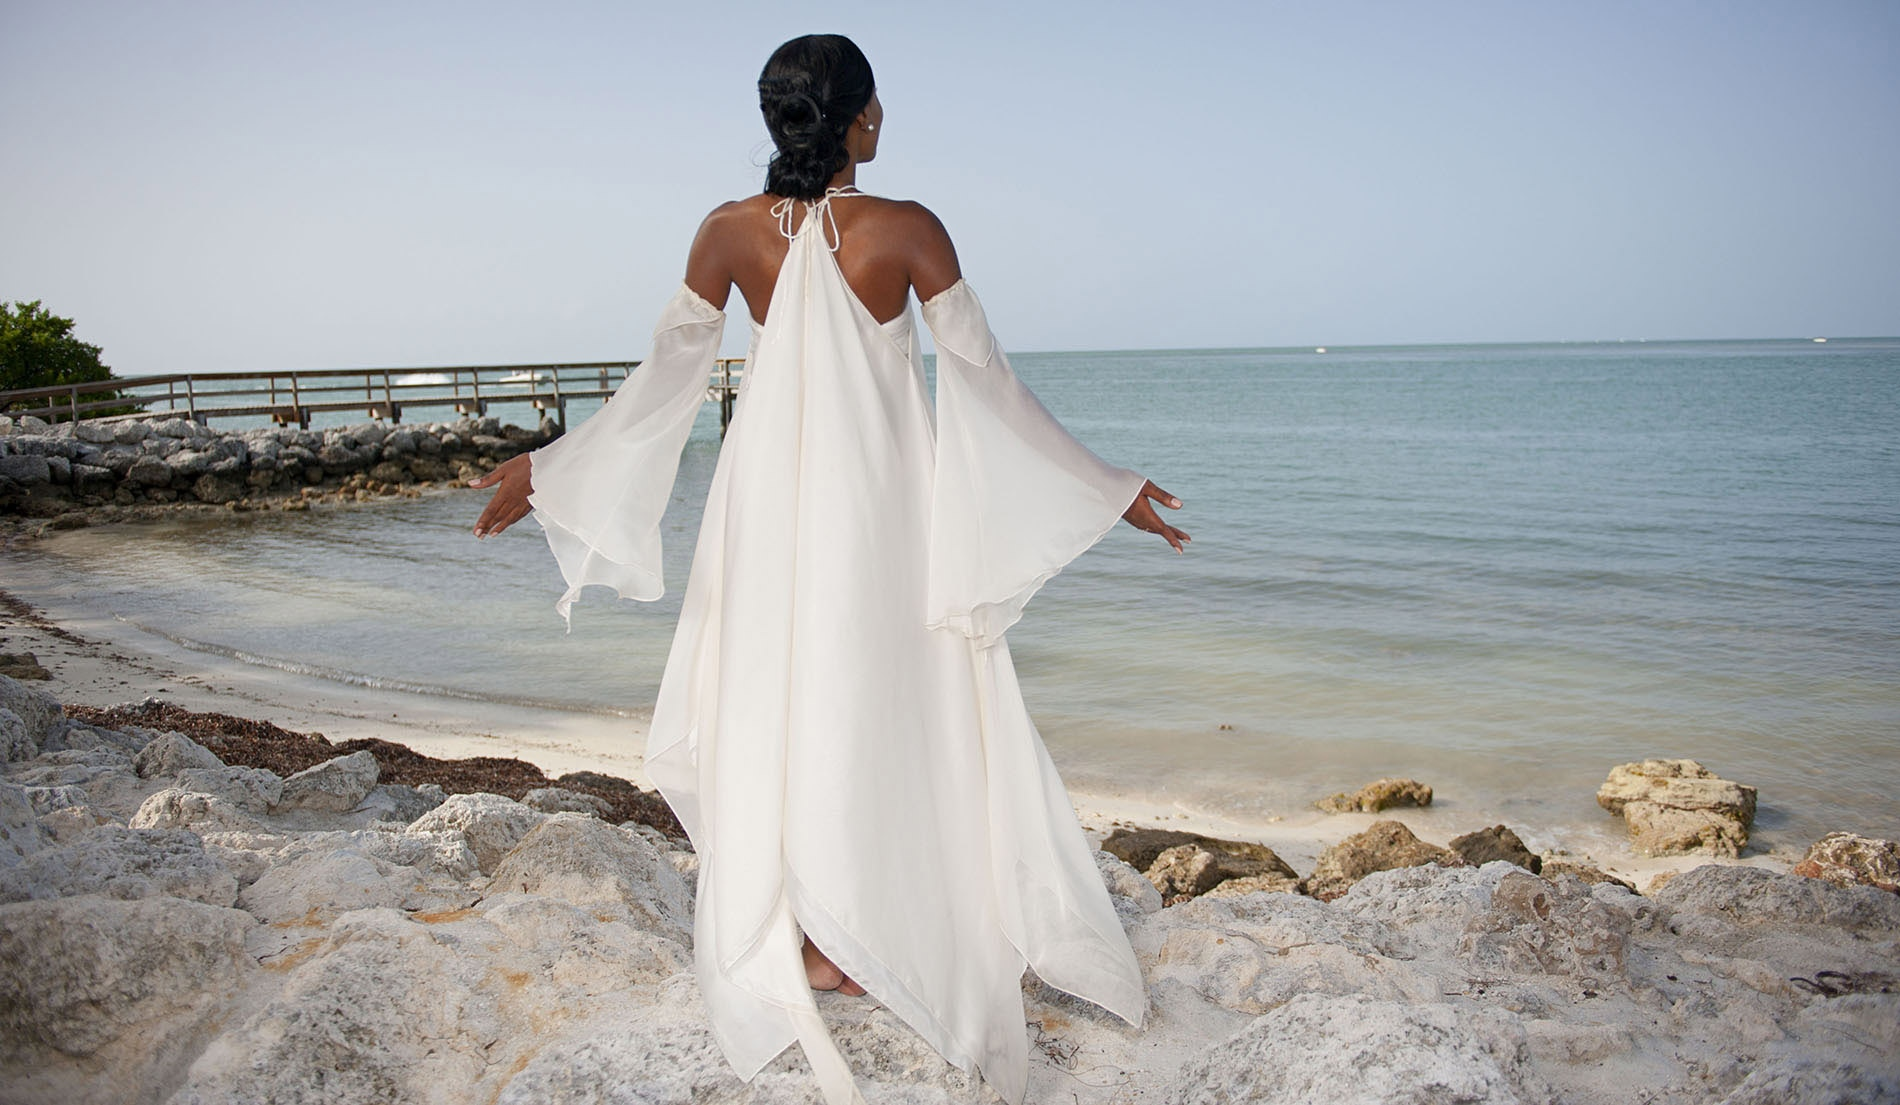 Angelic Second Marriage Wedding Dresses Beach - Look 1 back